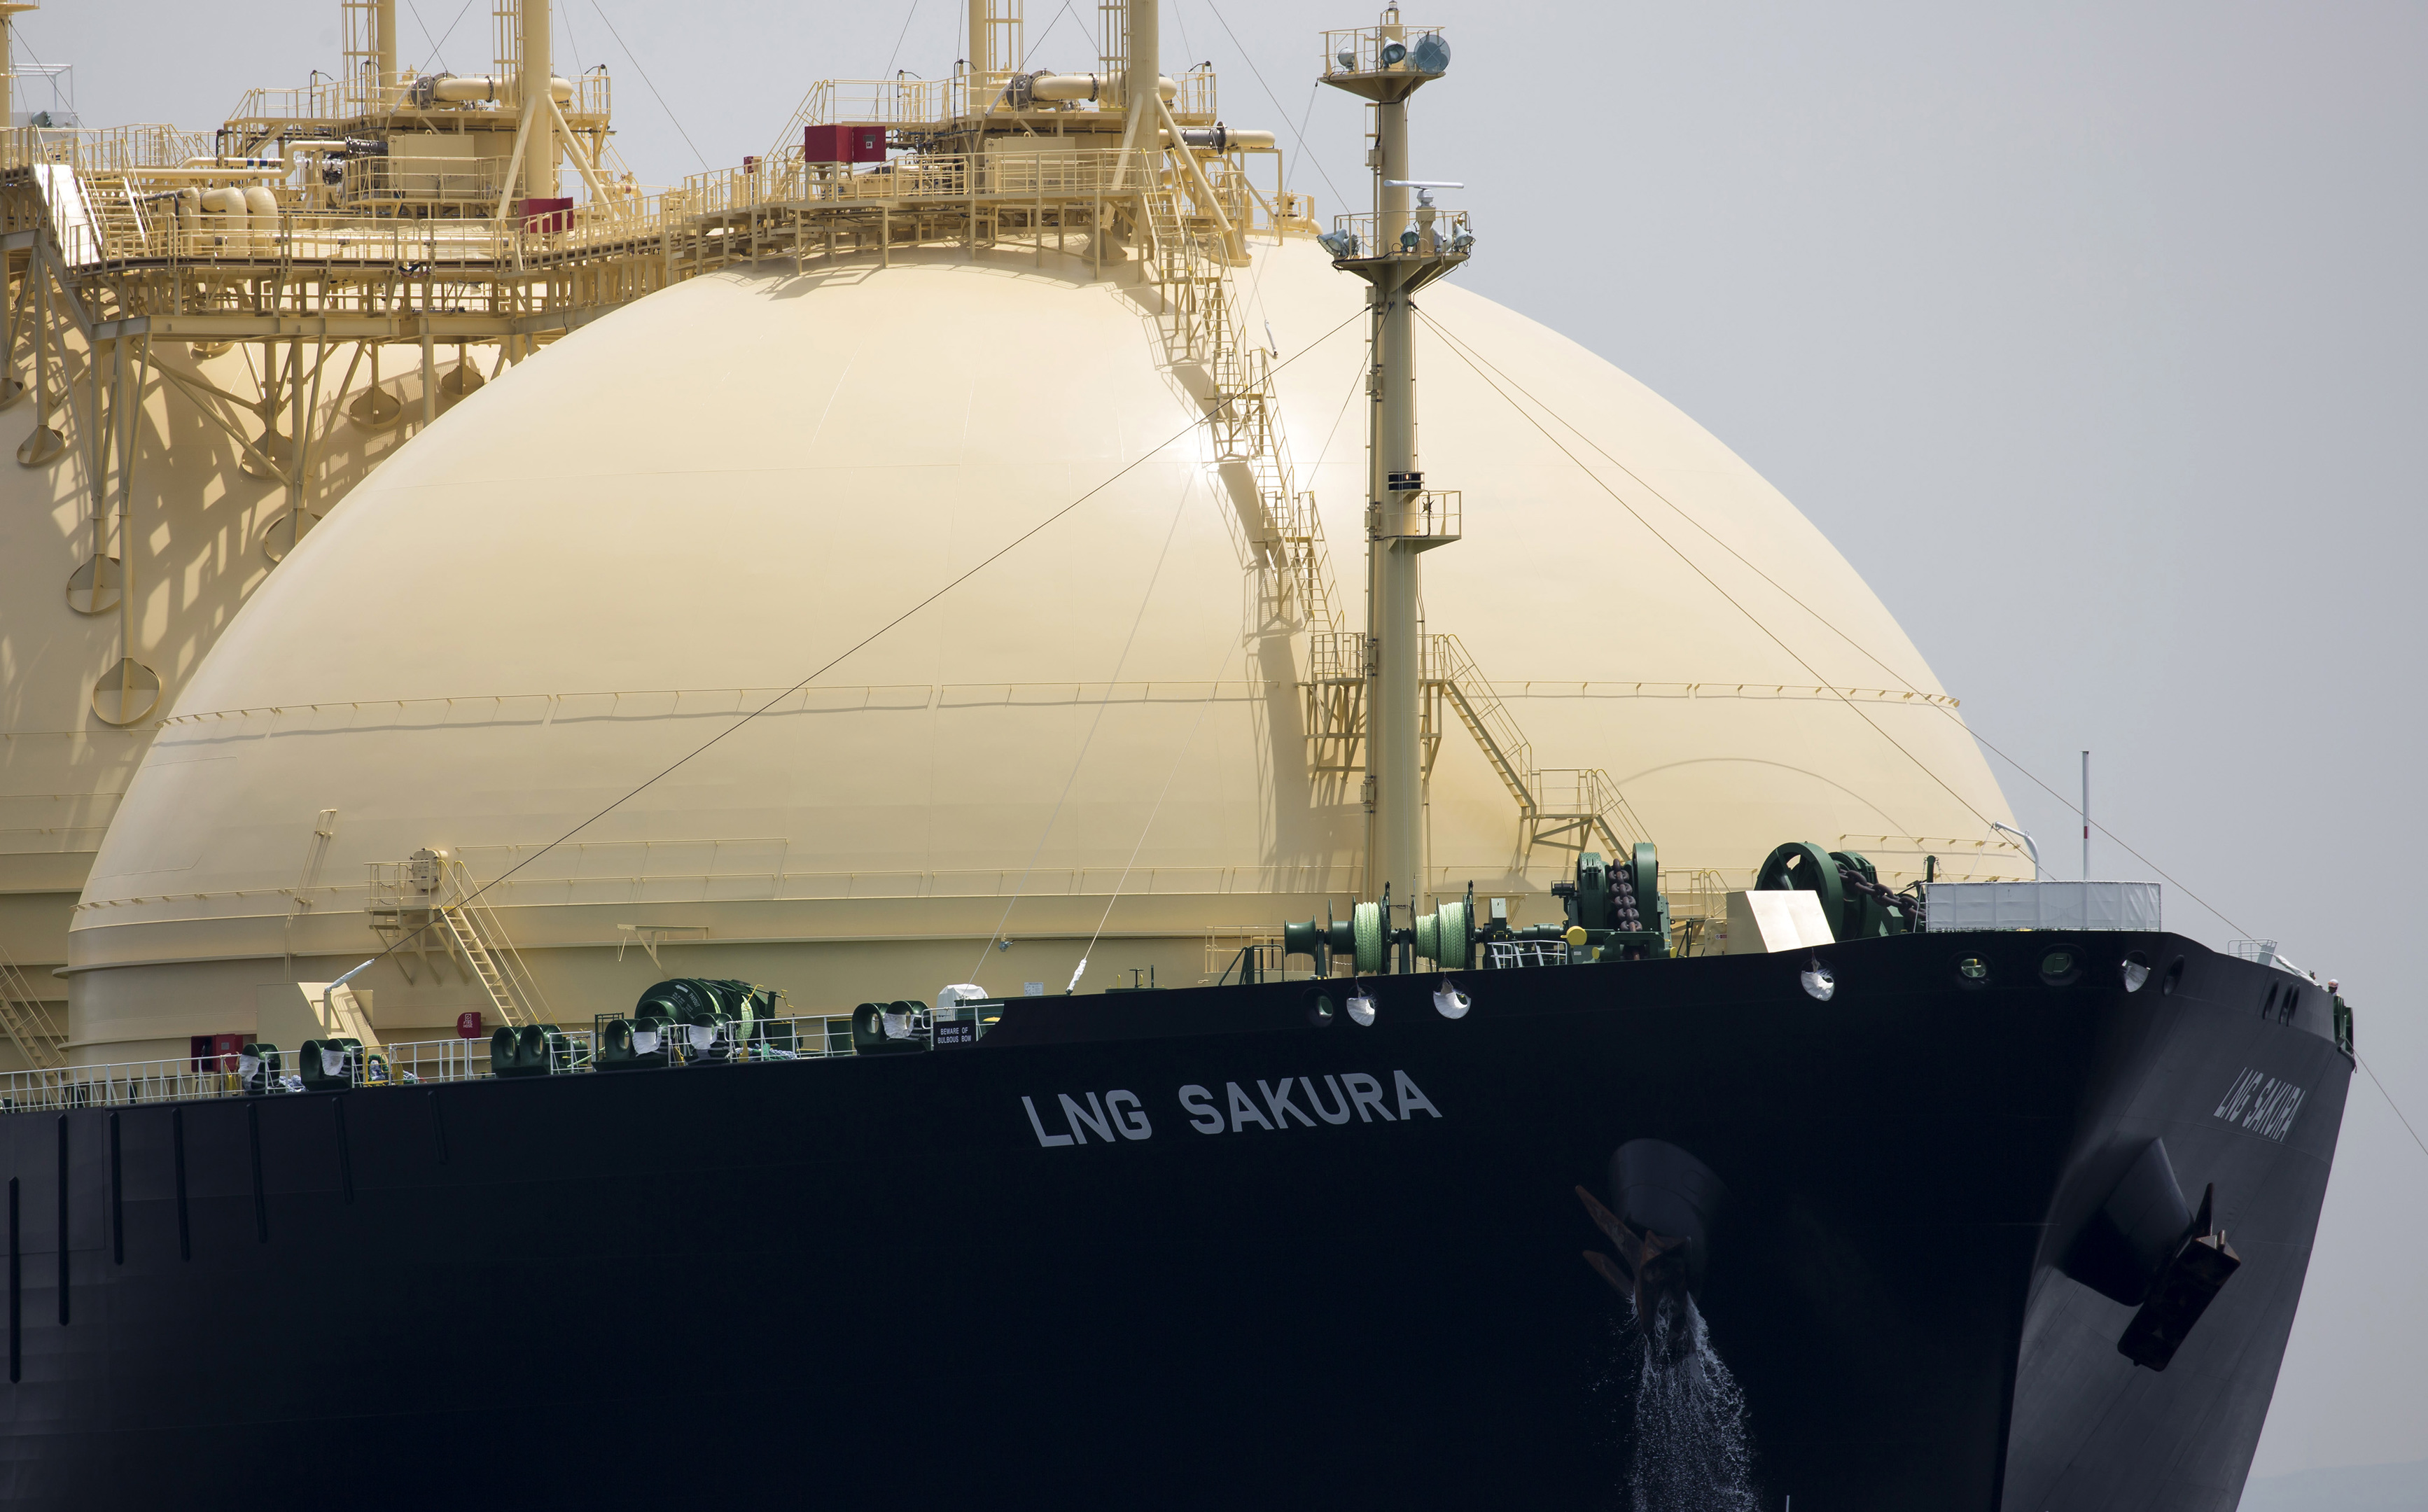 The LNG Sakura liquefied natural gas tanker arrives at Tokyo Gas Co.'s Negishi LNG terminal in Yokohama, Japan, on Monday, May 21, 2018. Tokyo Gas received Japan's first LNG shipment from Dominion Energy's Cove Point project today, the company said in statement. Photographer: Tomohiro Ohsumi/Bloomberg